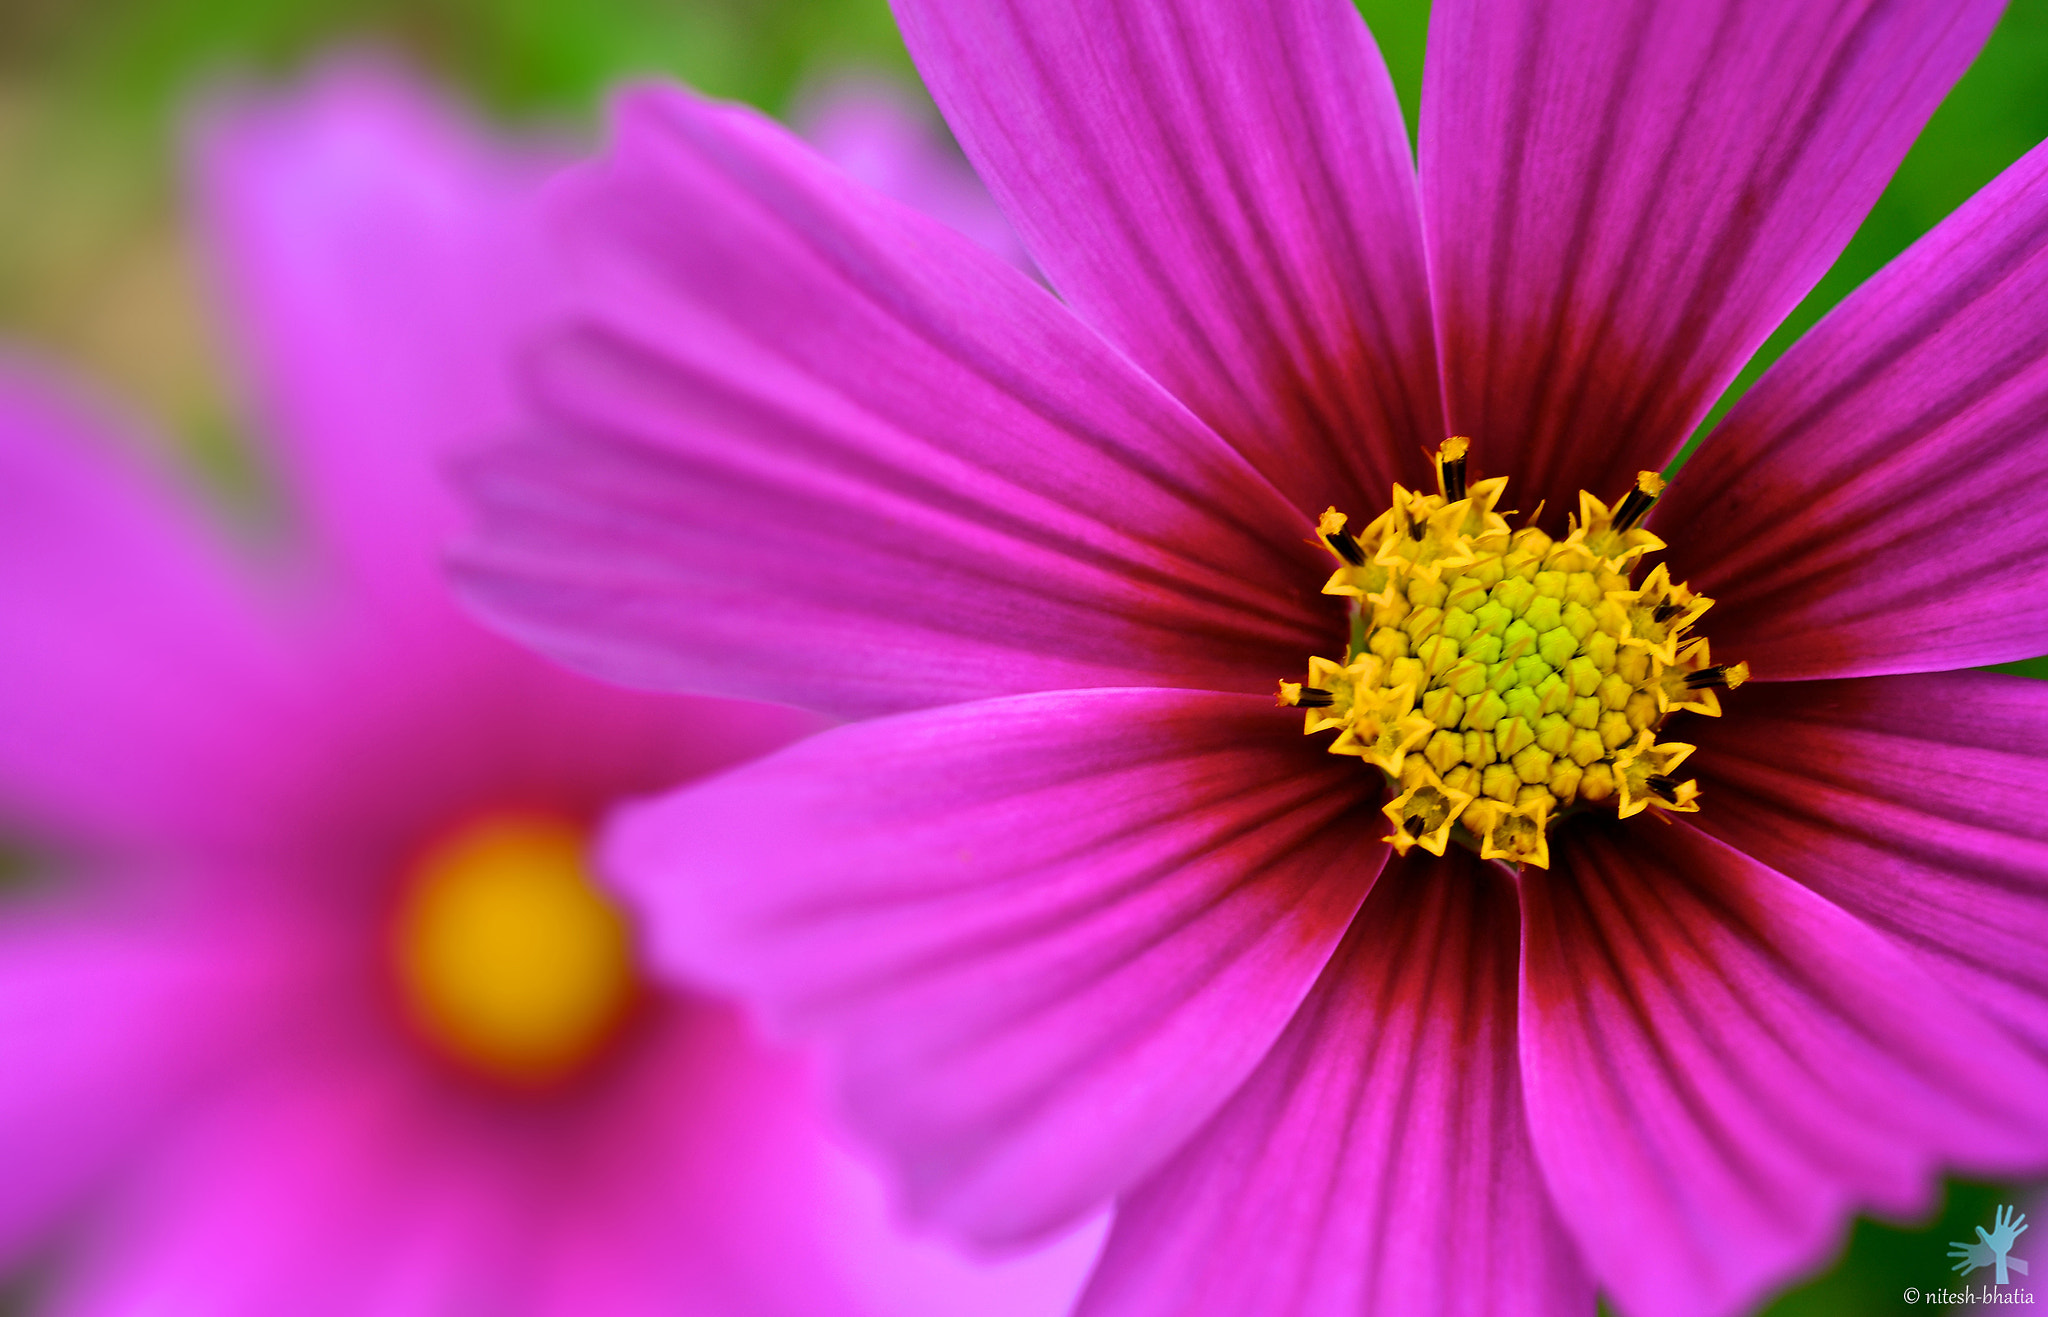 Photograph Pink Cosmos by Nitesh Bhatia on 500px